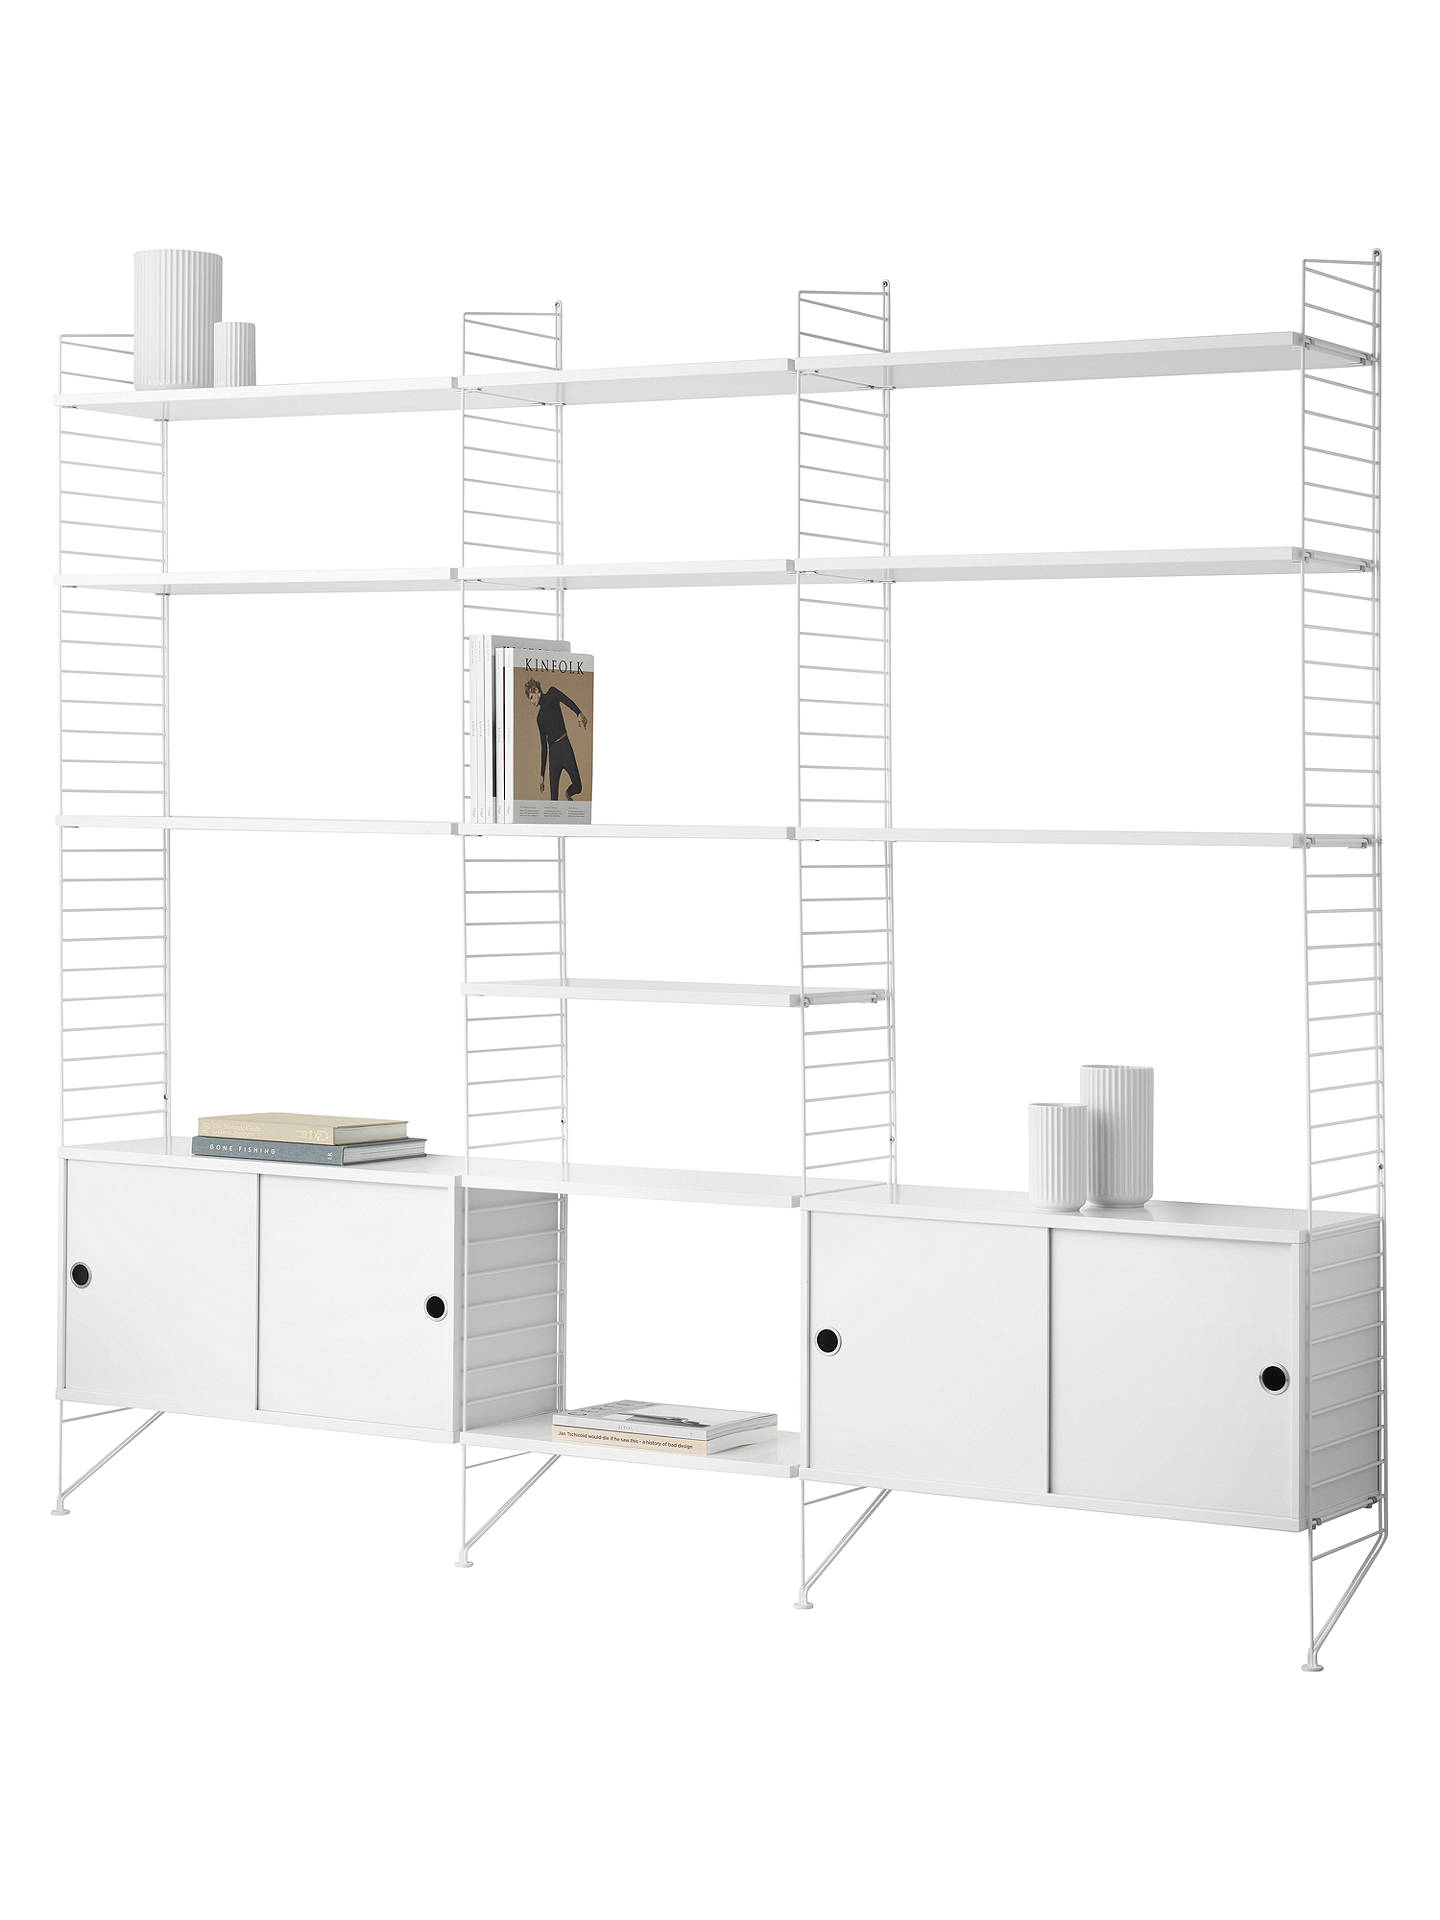 Buystring Shelving Unit with Double Cabinets, Shelves and Wall Fastened Side Racks, White Online at johnlewis.com